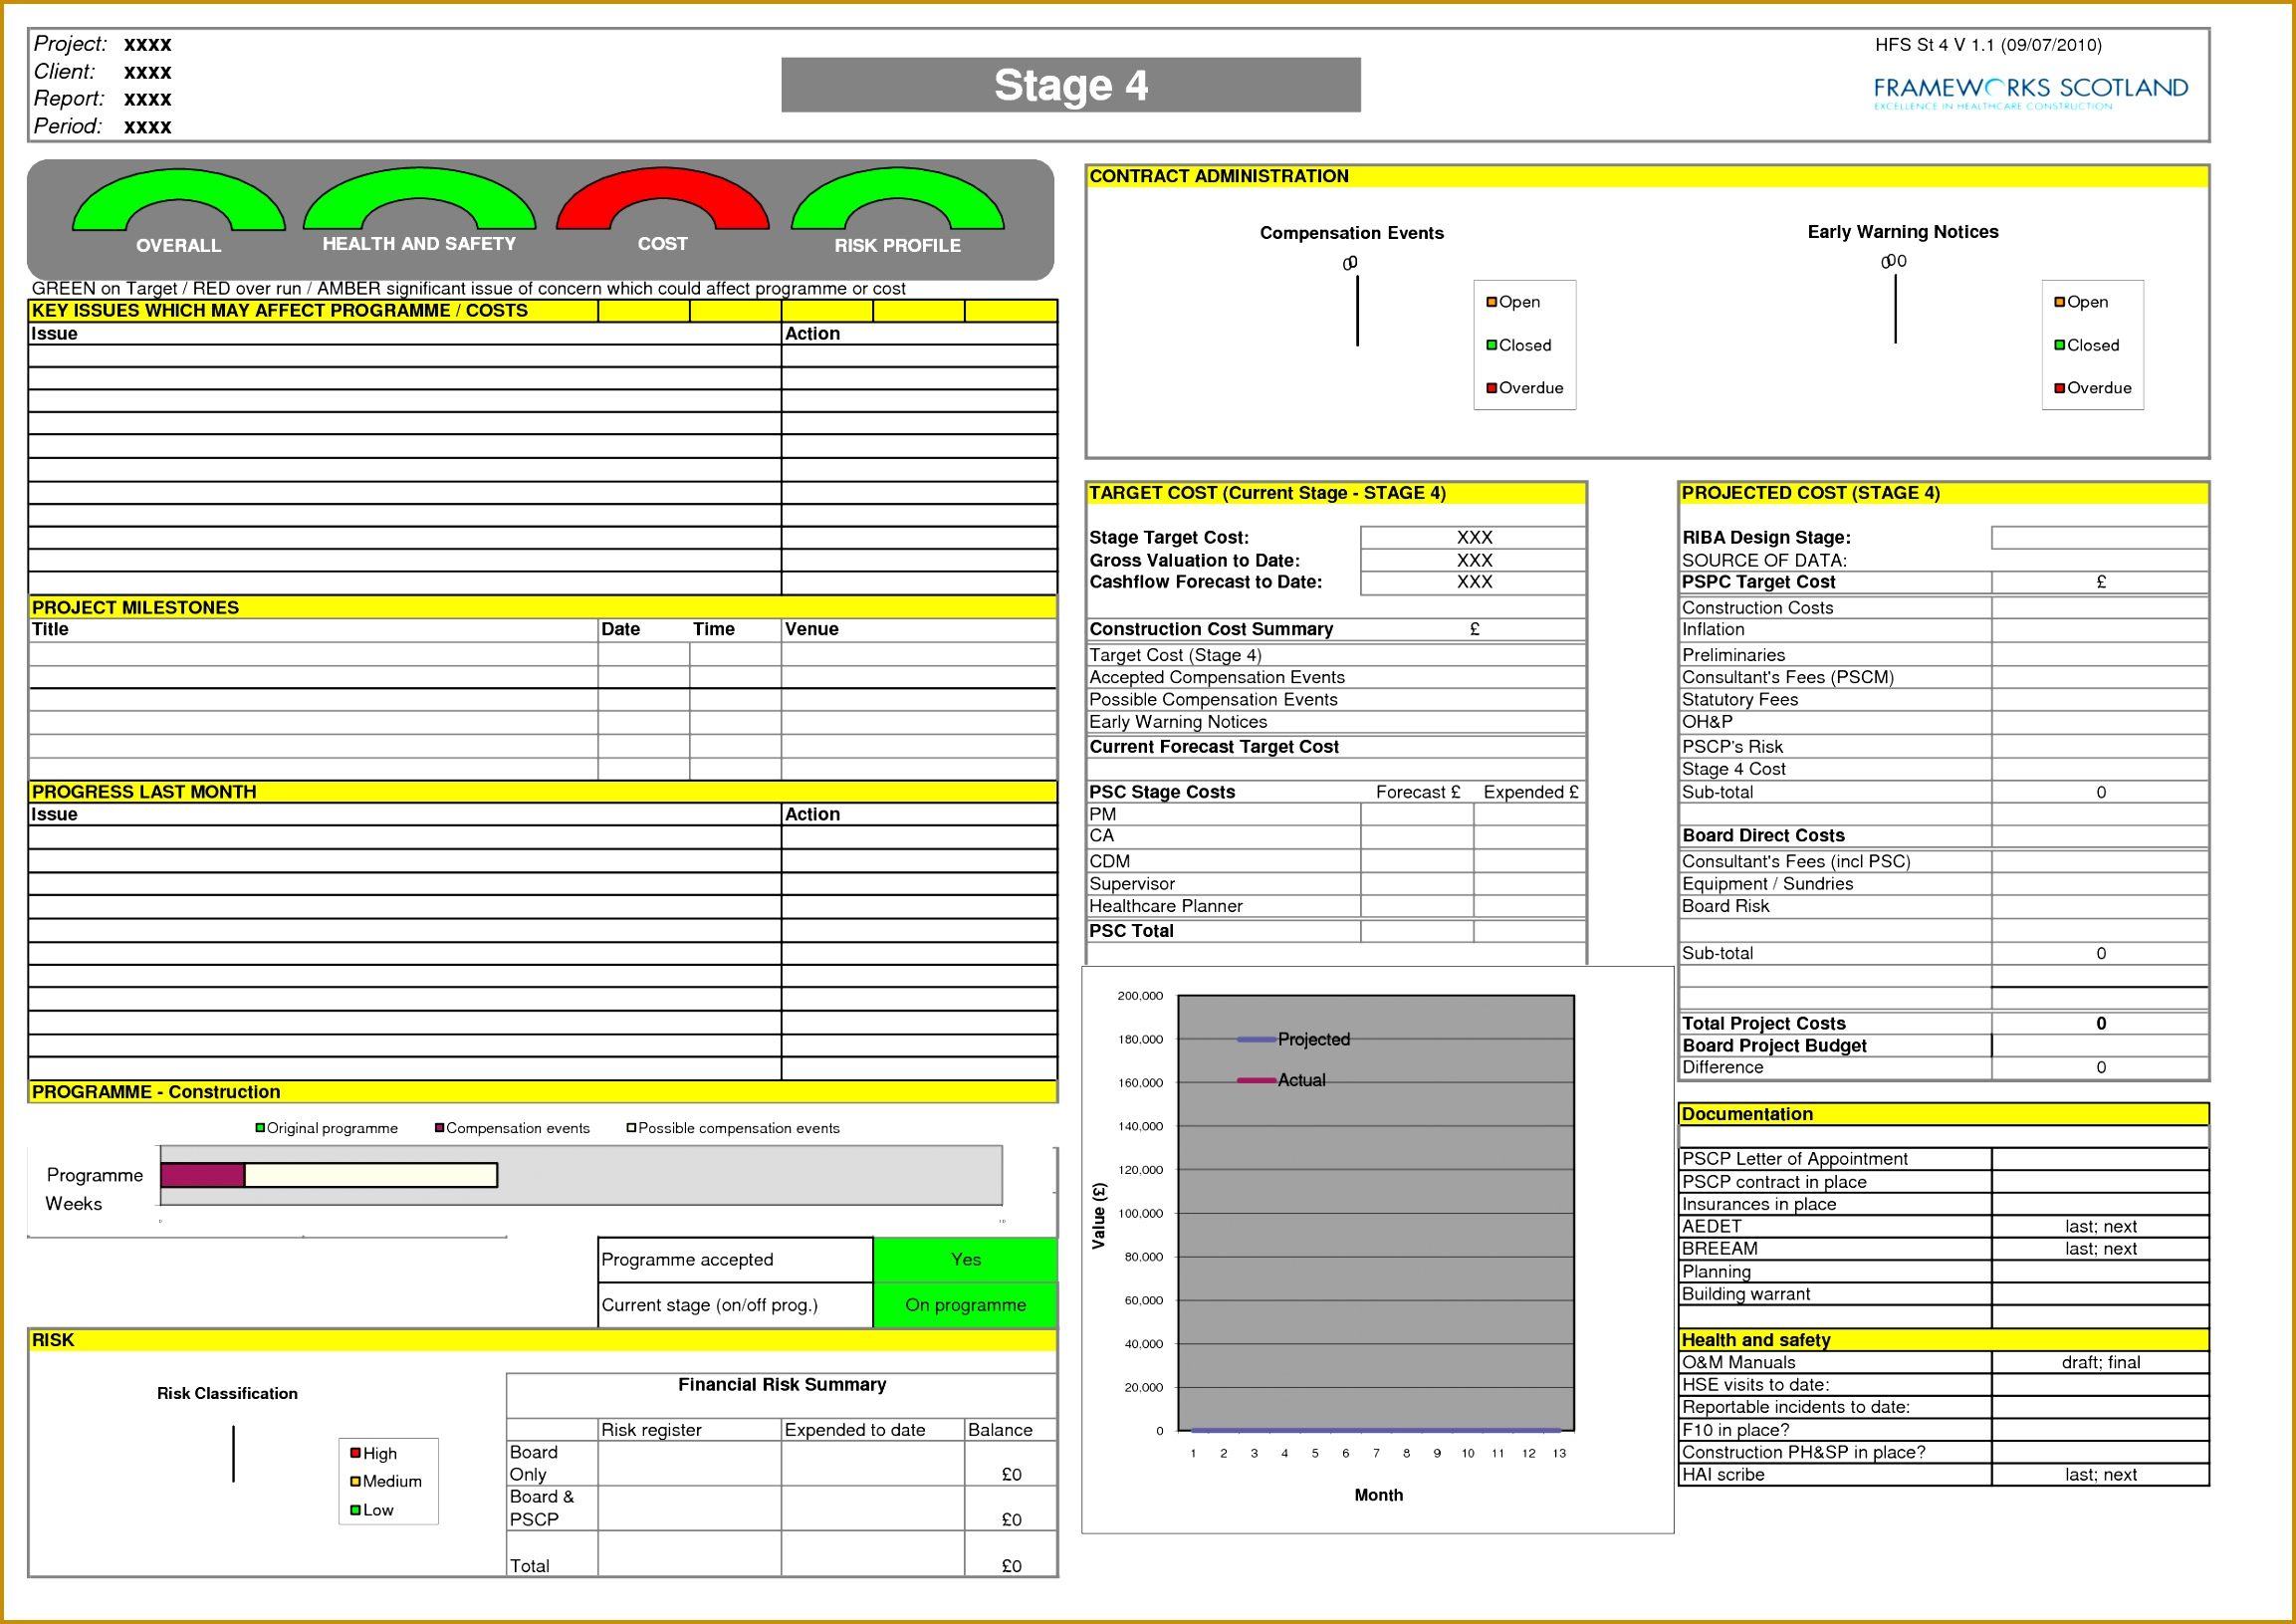 Replacethis] Construction Monthly Report Template Designed By Riv 16312306